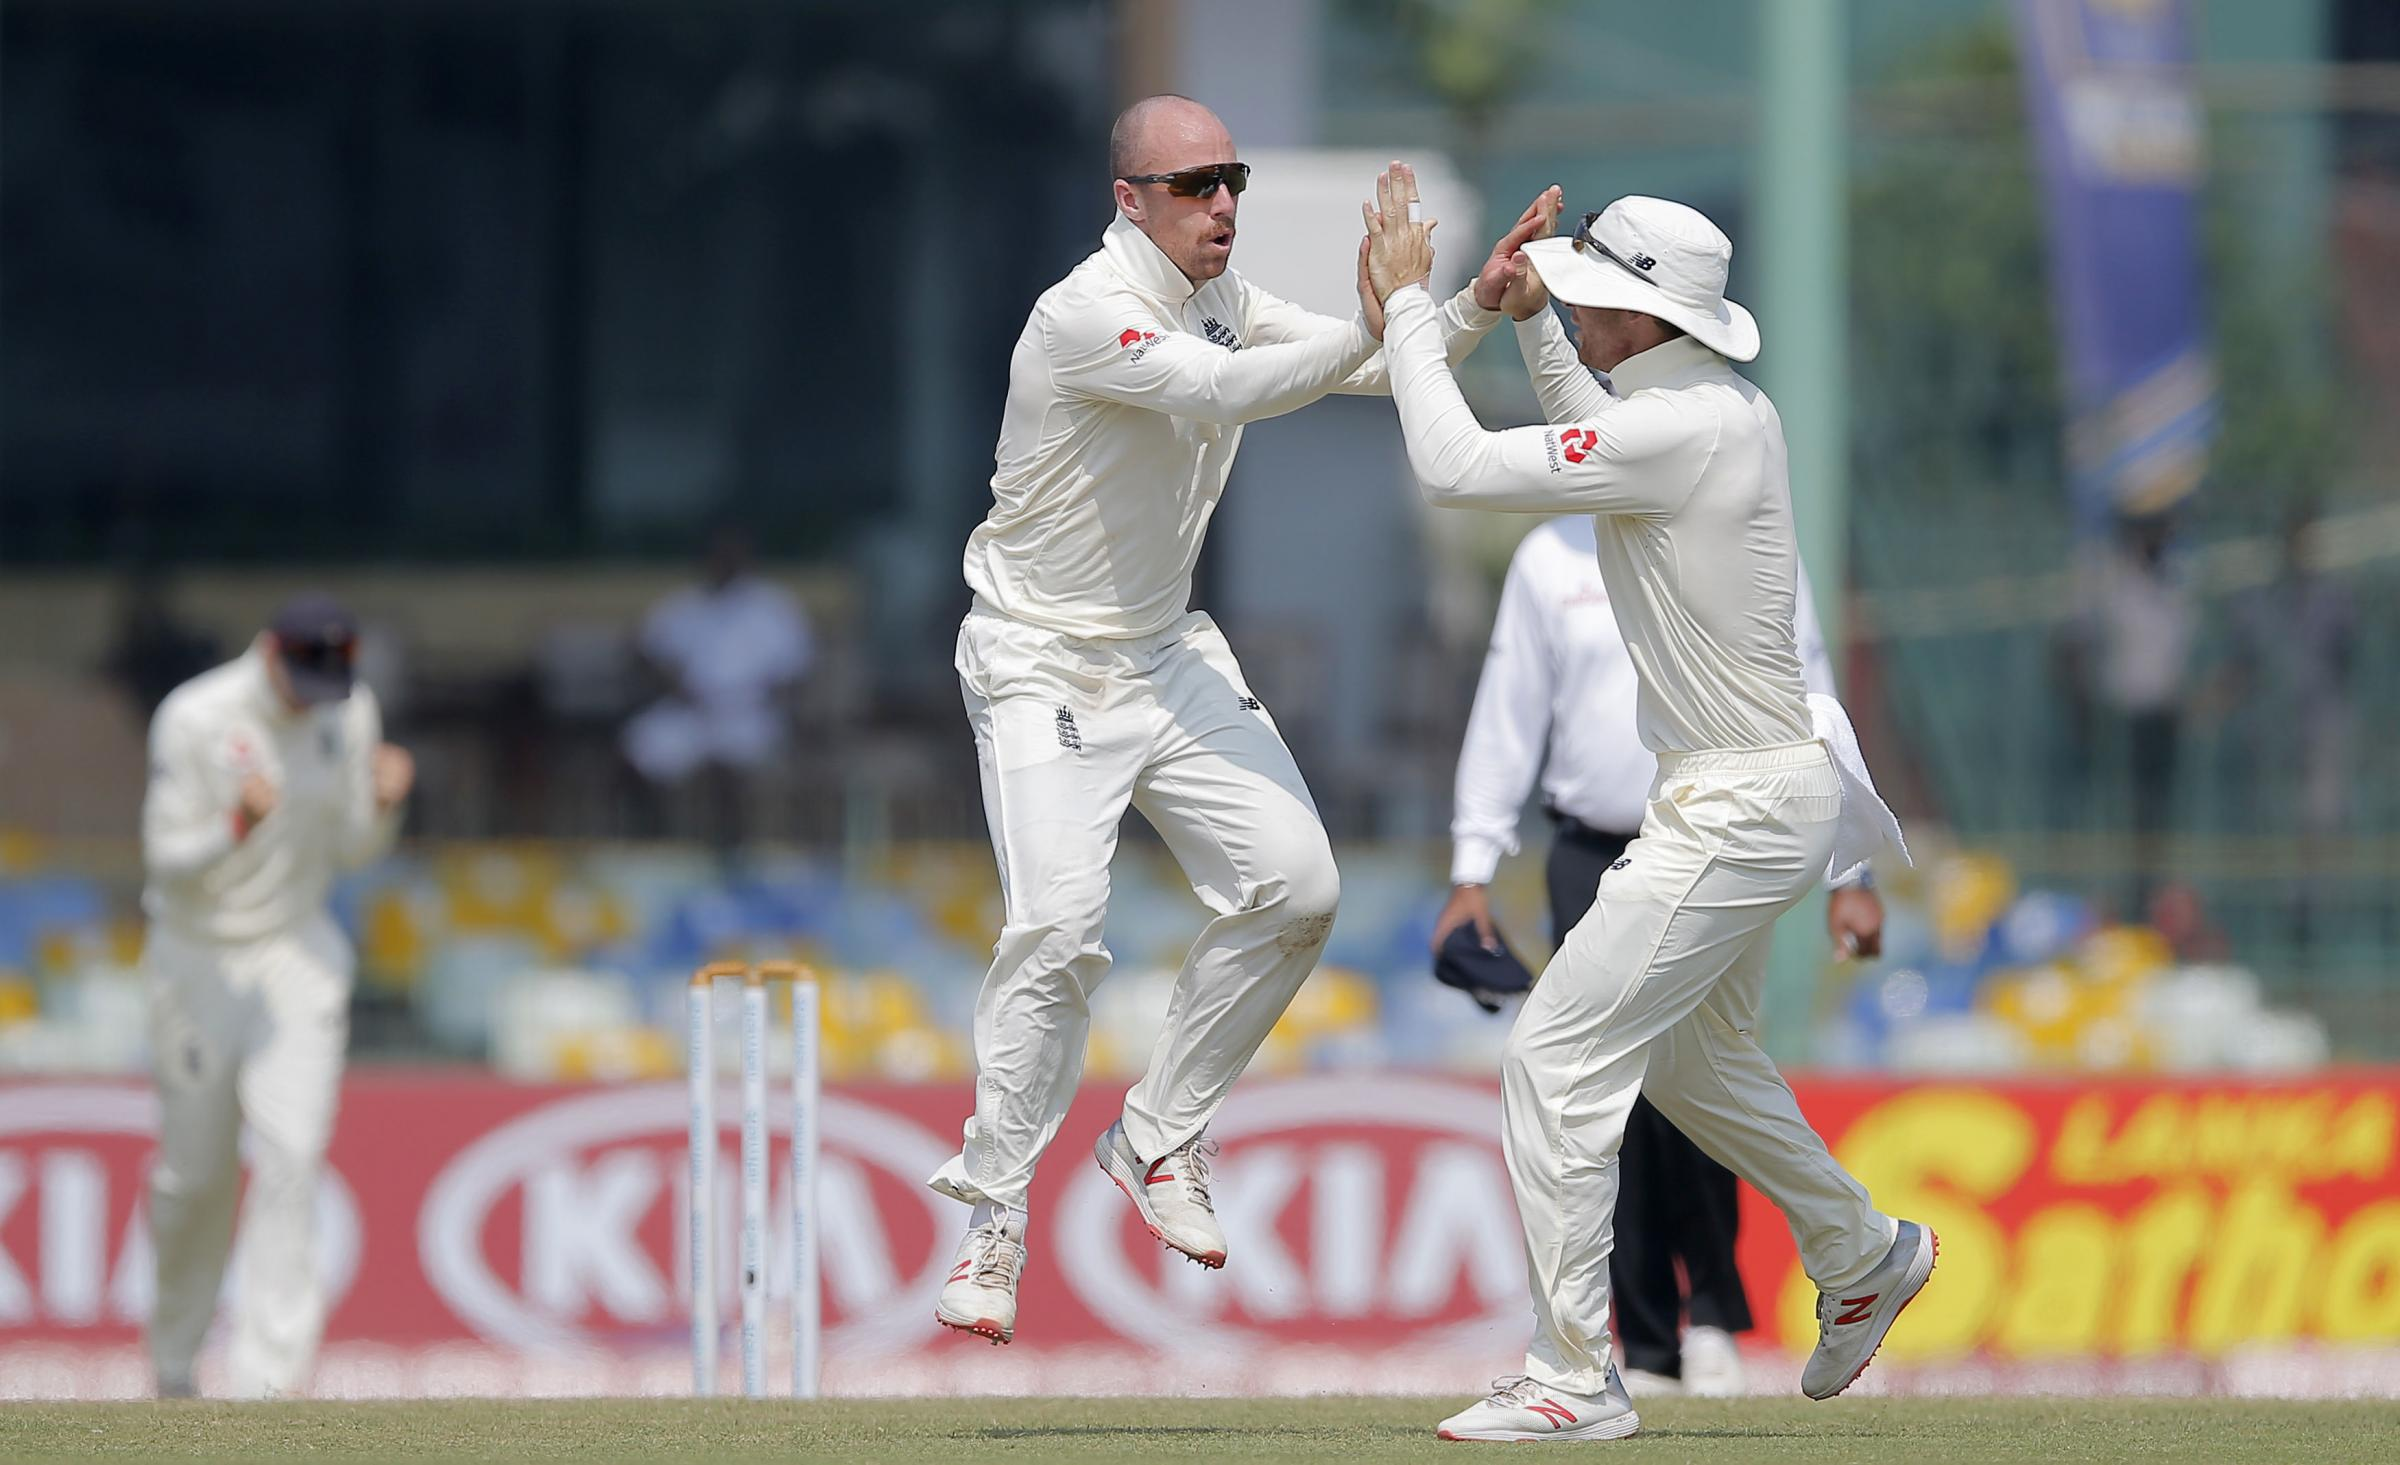 England's Jack Leach, left, celebrates taking the wicket of Sri Lanka's Lakshan Sandakan during the fourth day of the third test cricket match between Sri Lanka and England in Colombo, Sri Lanka, Monday, Nov. 26, 2018. (AP Photo/Eranga Jayawardena